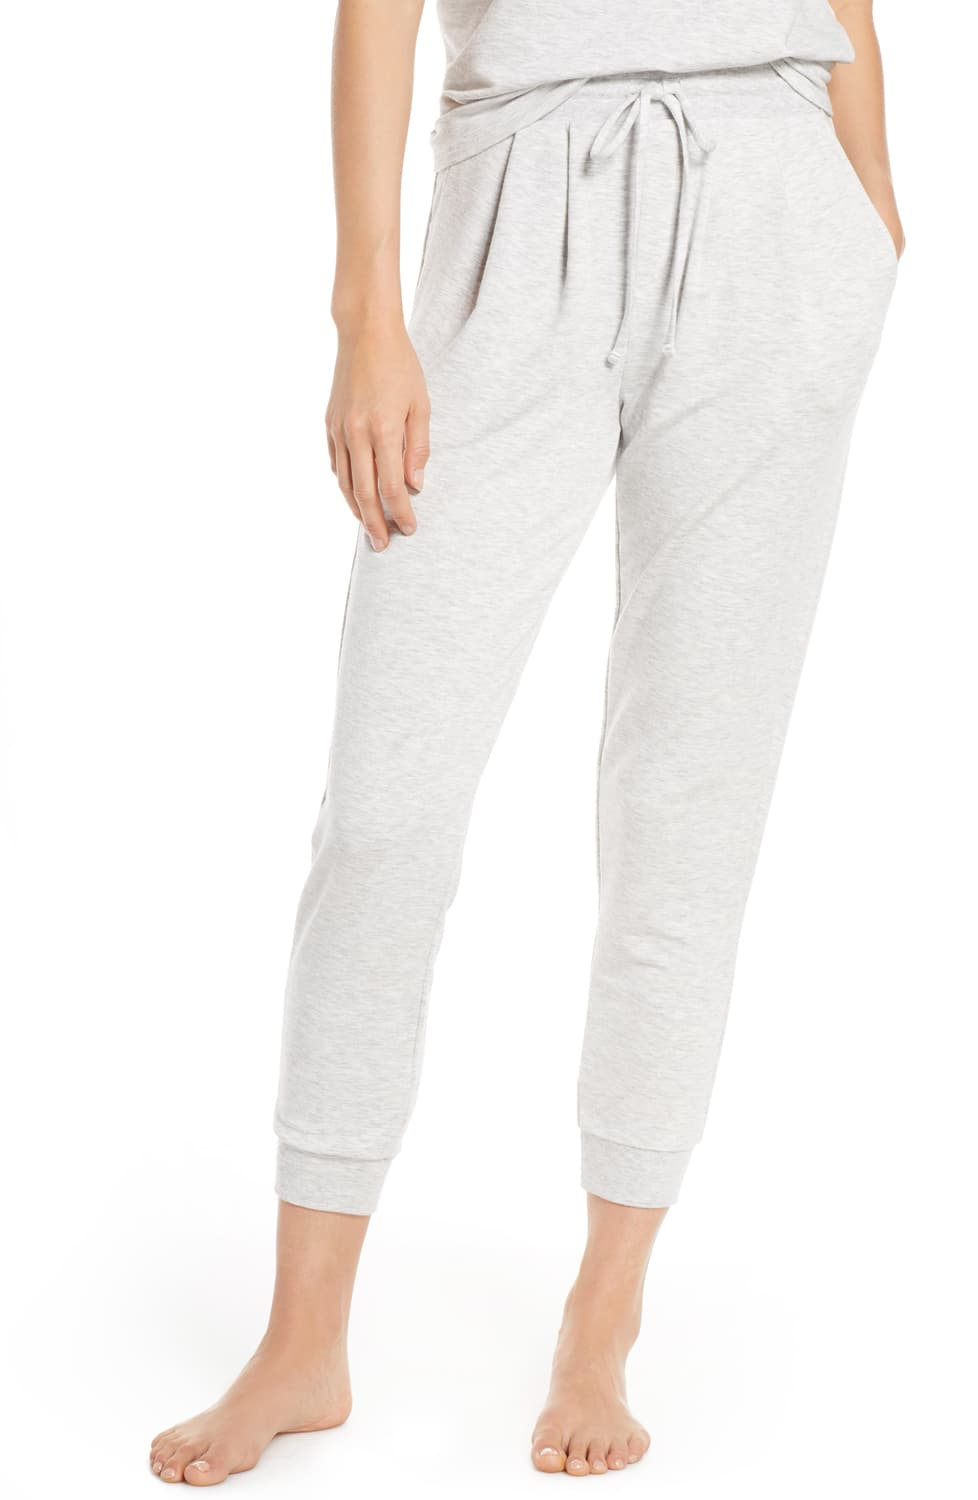 Jogger Pants - SALE: $29.90, after sale: $45